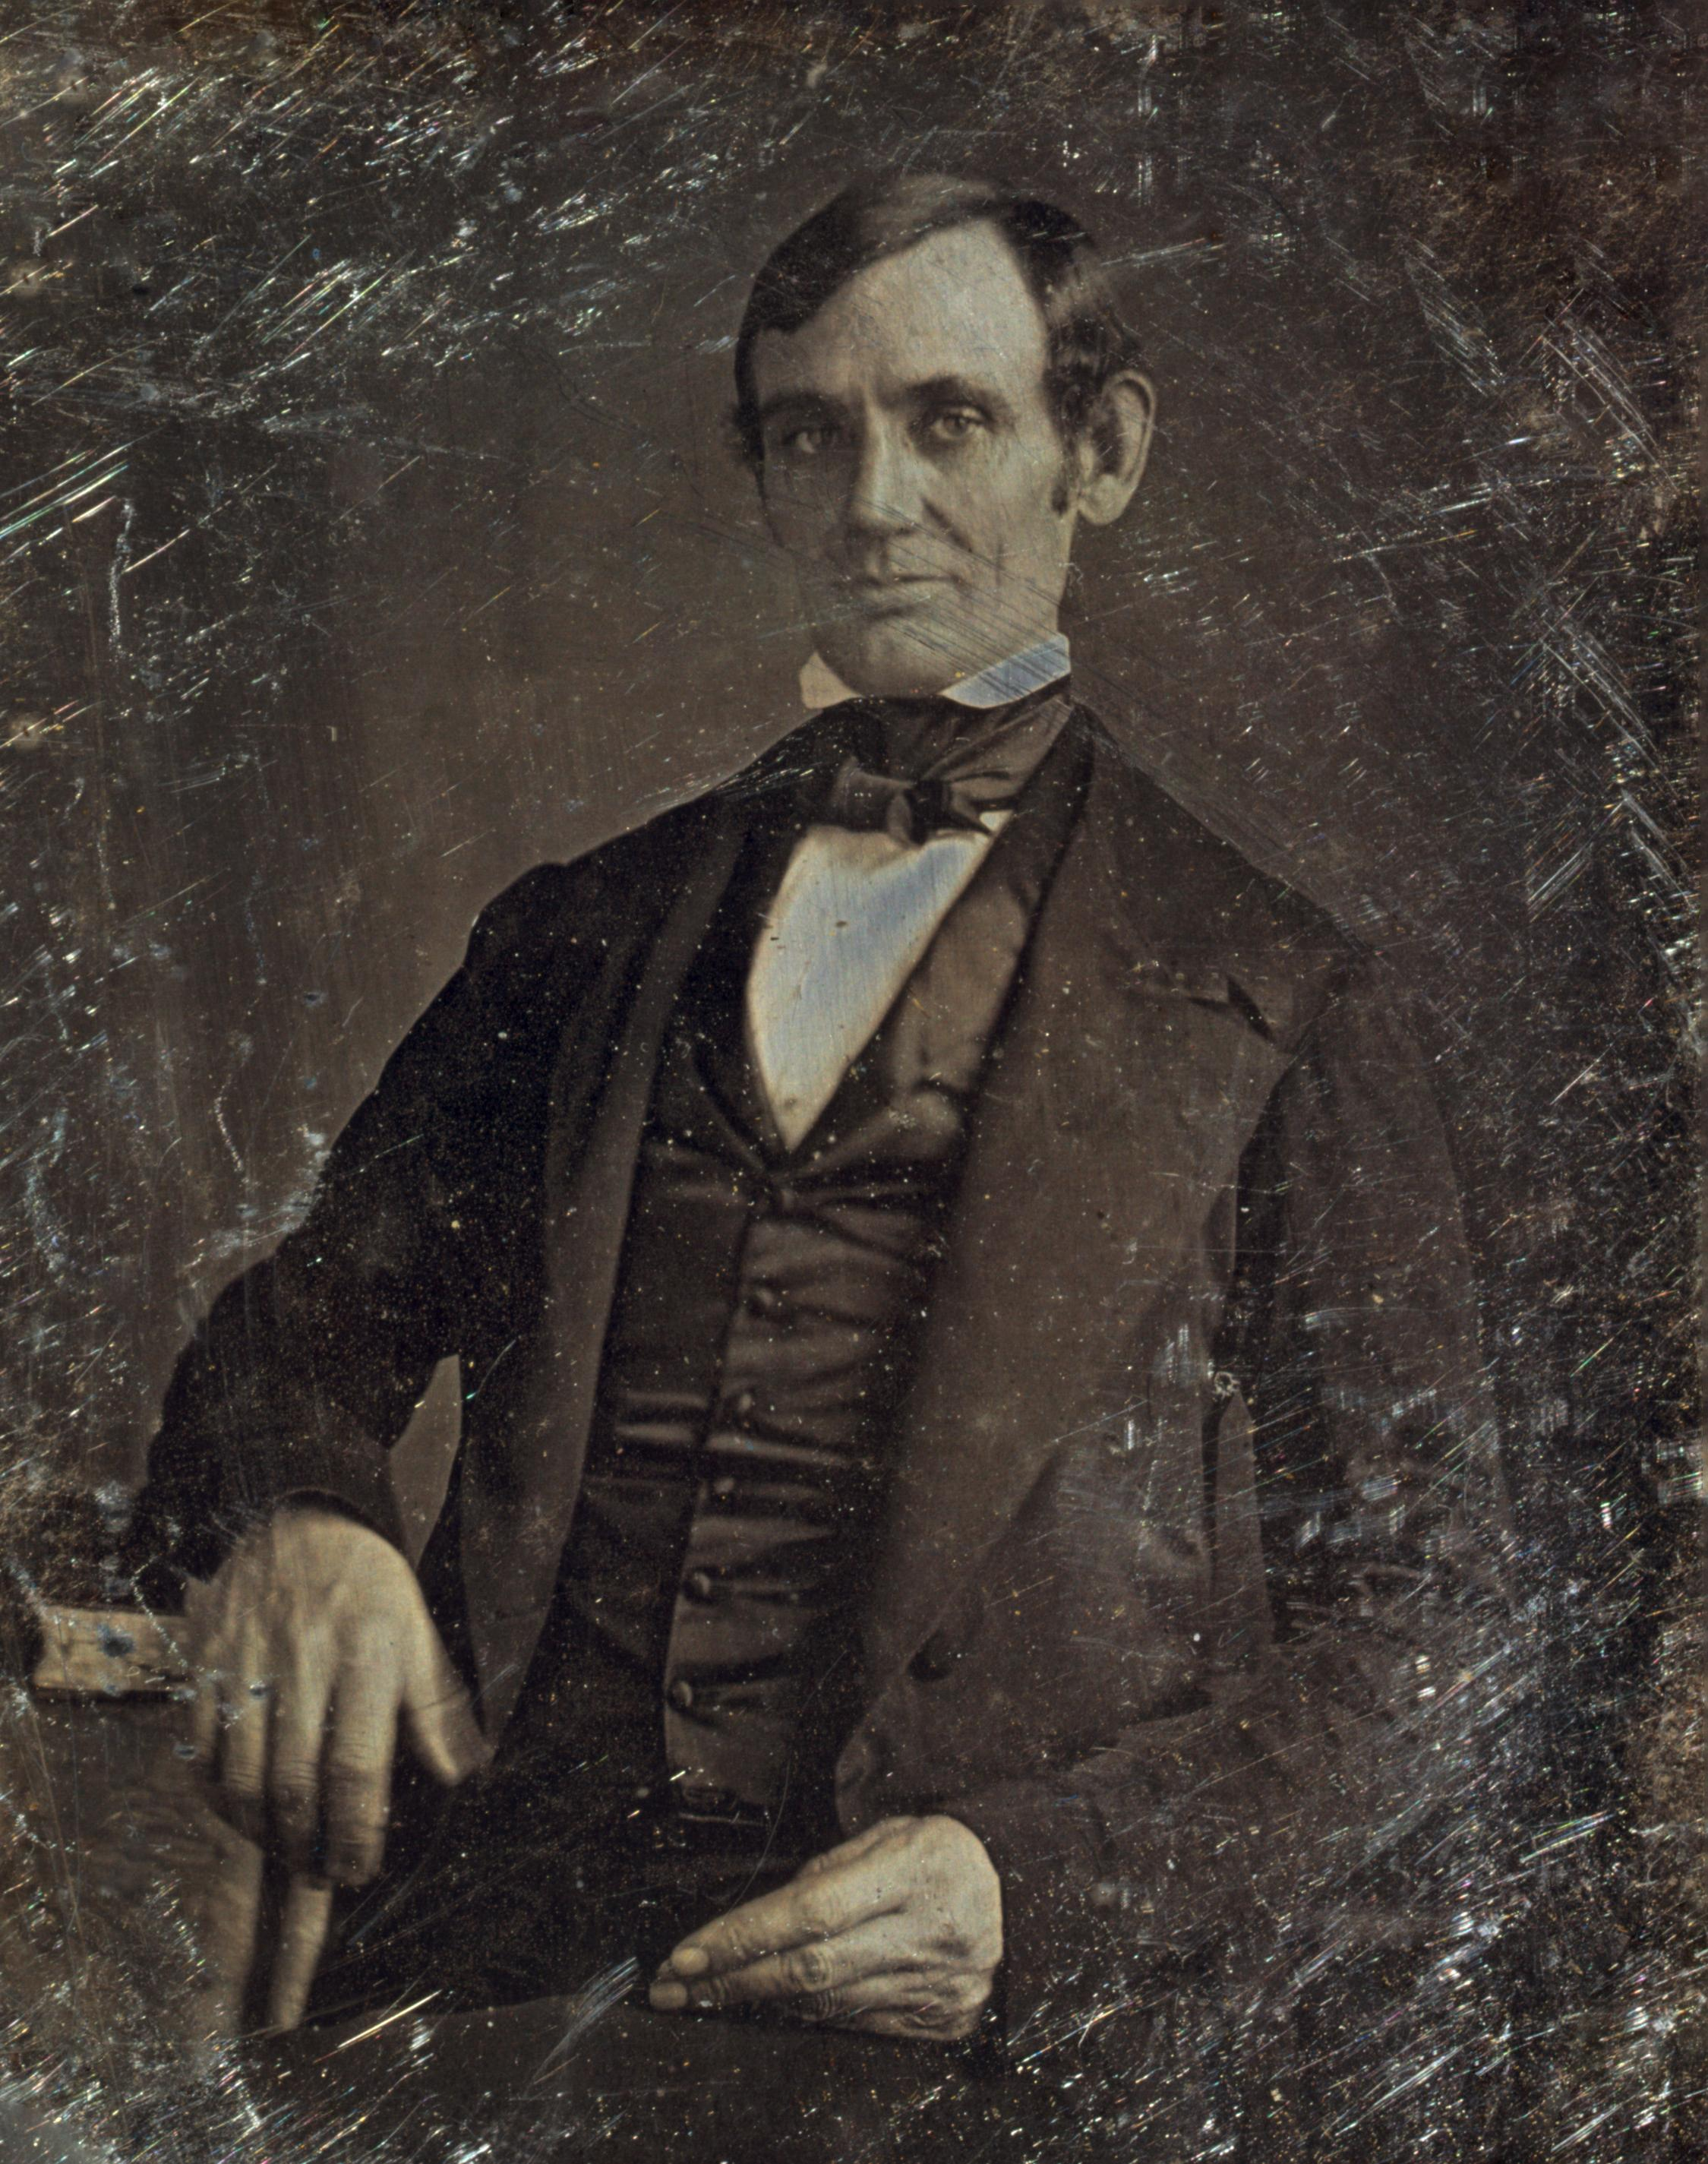 Abraham Lincoln in his late 30s as a member of the U.S. House of Representatives. Attributed to Nicholas H. Shepherd, based on the recollections of Gibson W. Harris, a law student in Lincoln's office from 1845 to 1847.